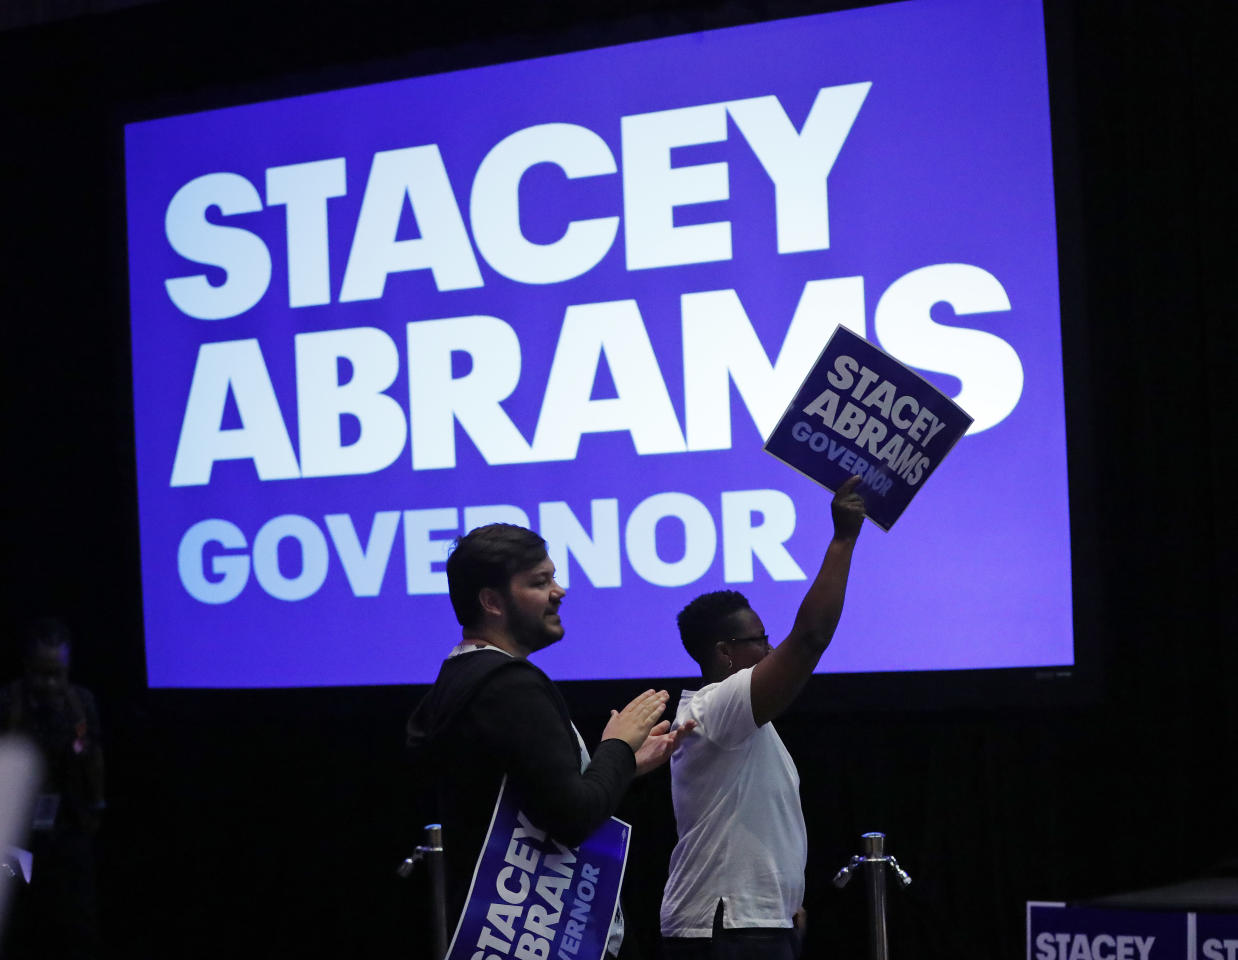 Supporters react during an election-night watch party for Georgia Democratic gubernatorial candidate Stacey Abrams, Tuesday, May 22, 2018, in Atlanta. (AP Photo/John Bazemore)